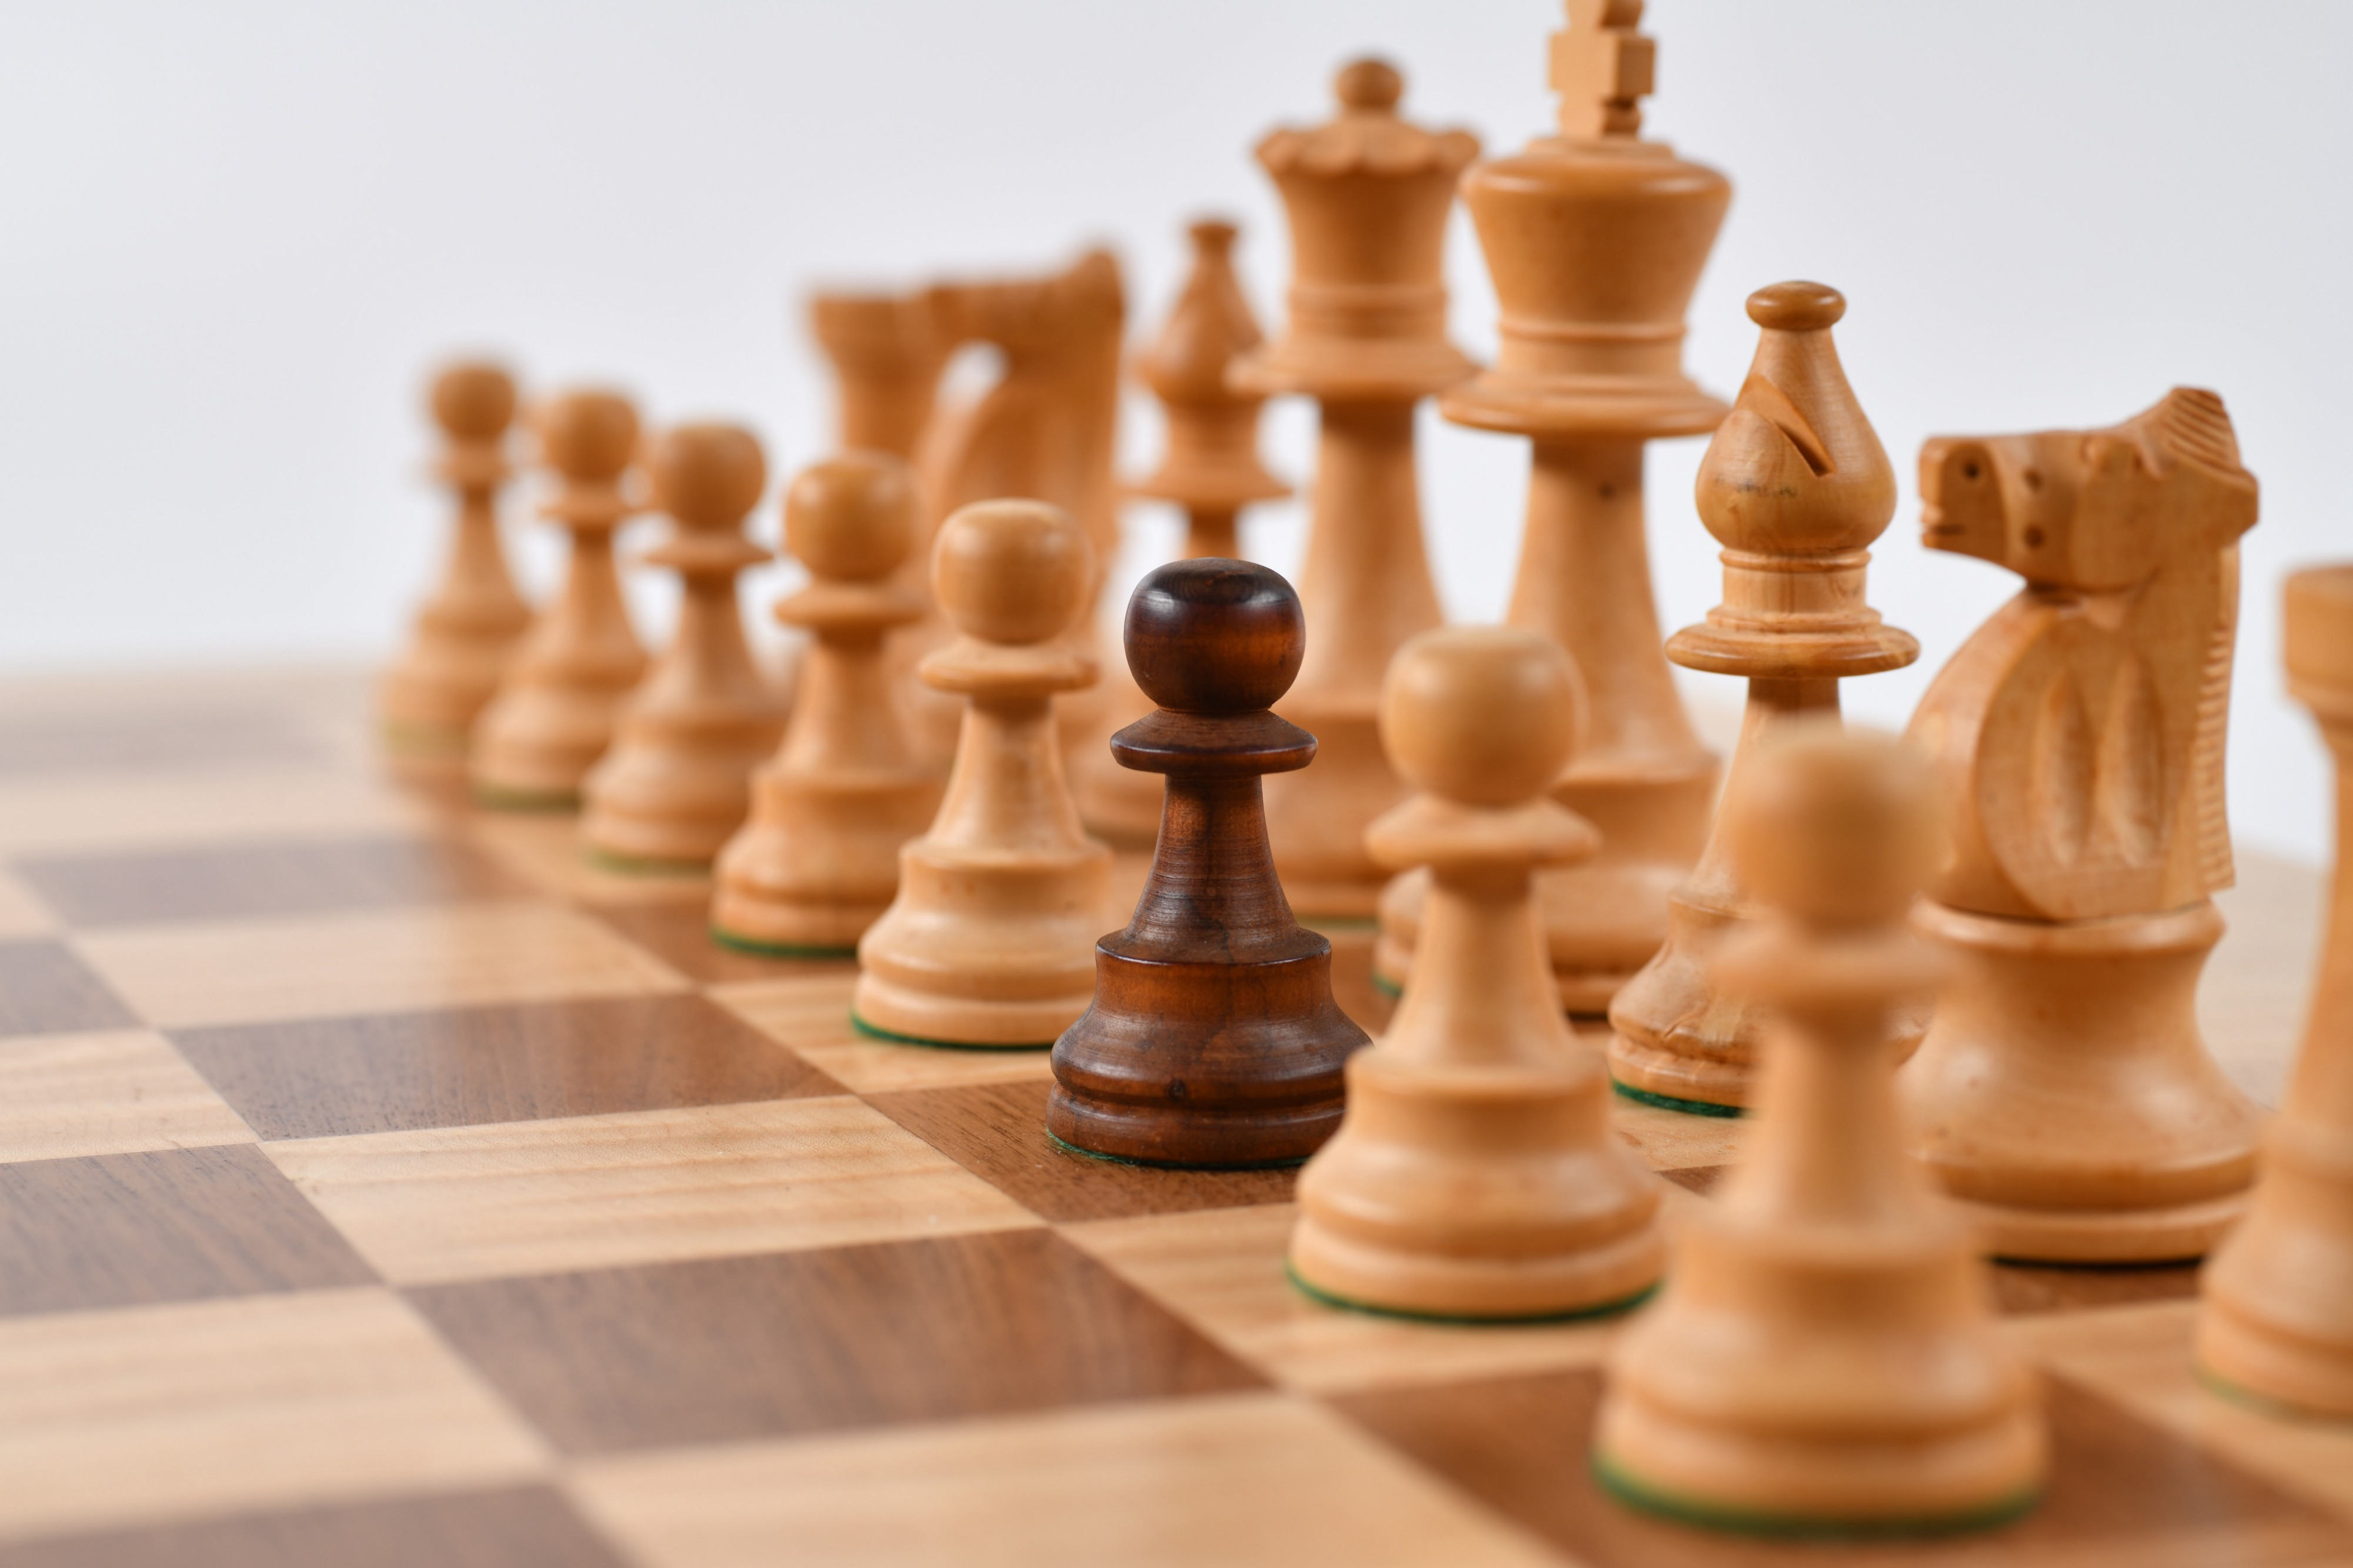 white chess pieces with one rust-colored pawn ready for play